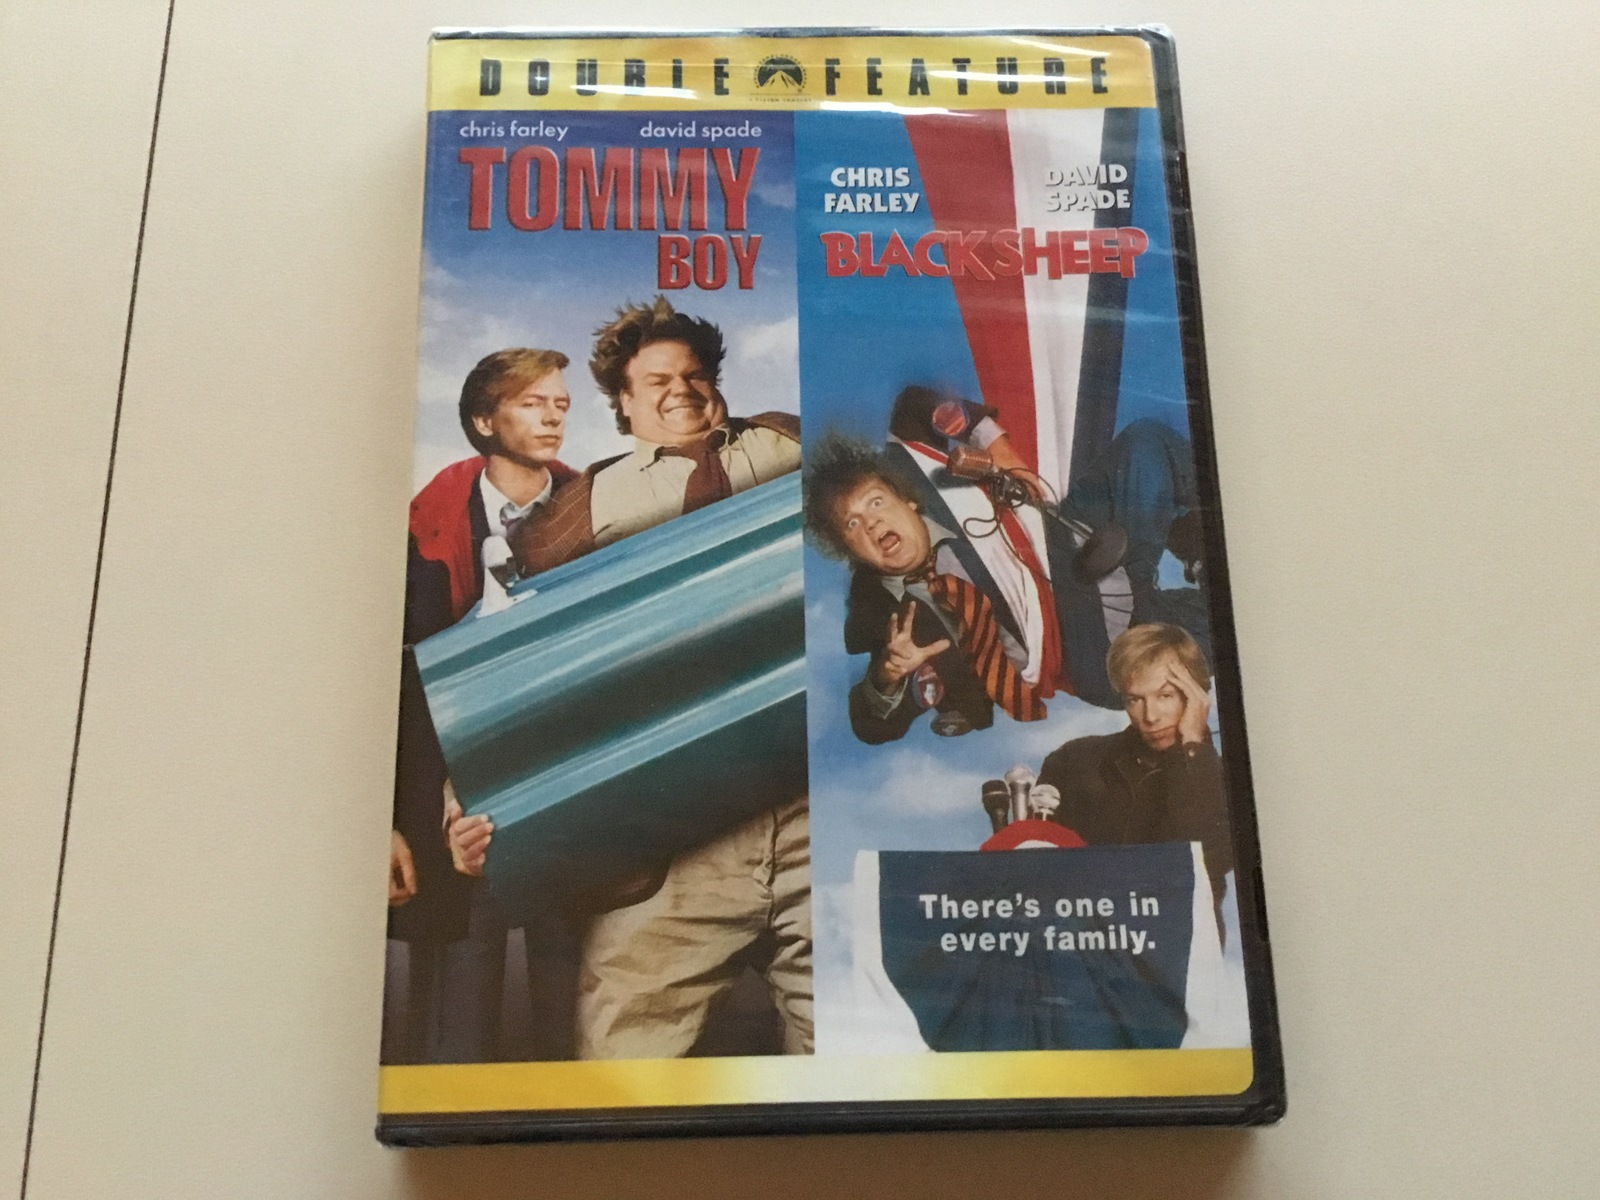 Primary image for DVD - Tommy Boy / Black Sheep - NEW & Sealed - Widescreen Edition - Chris Farley